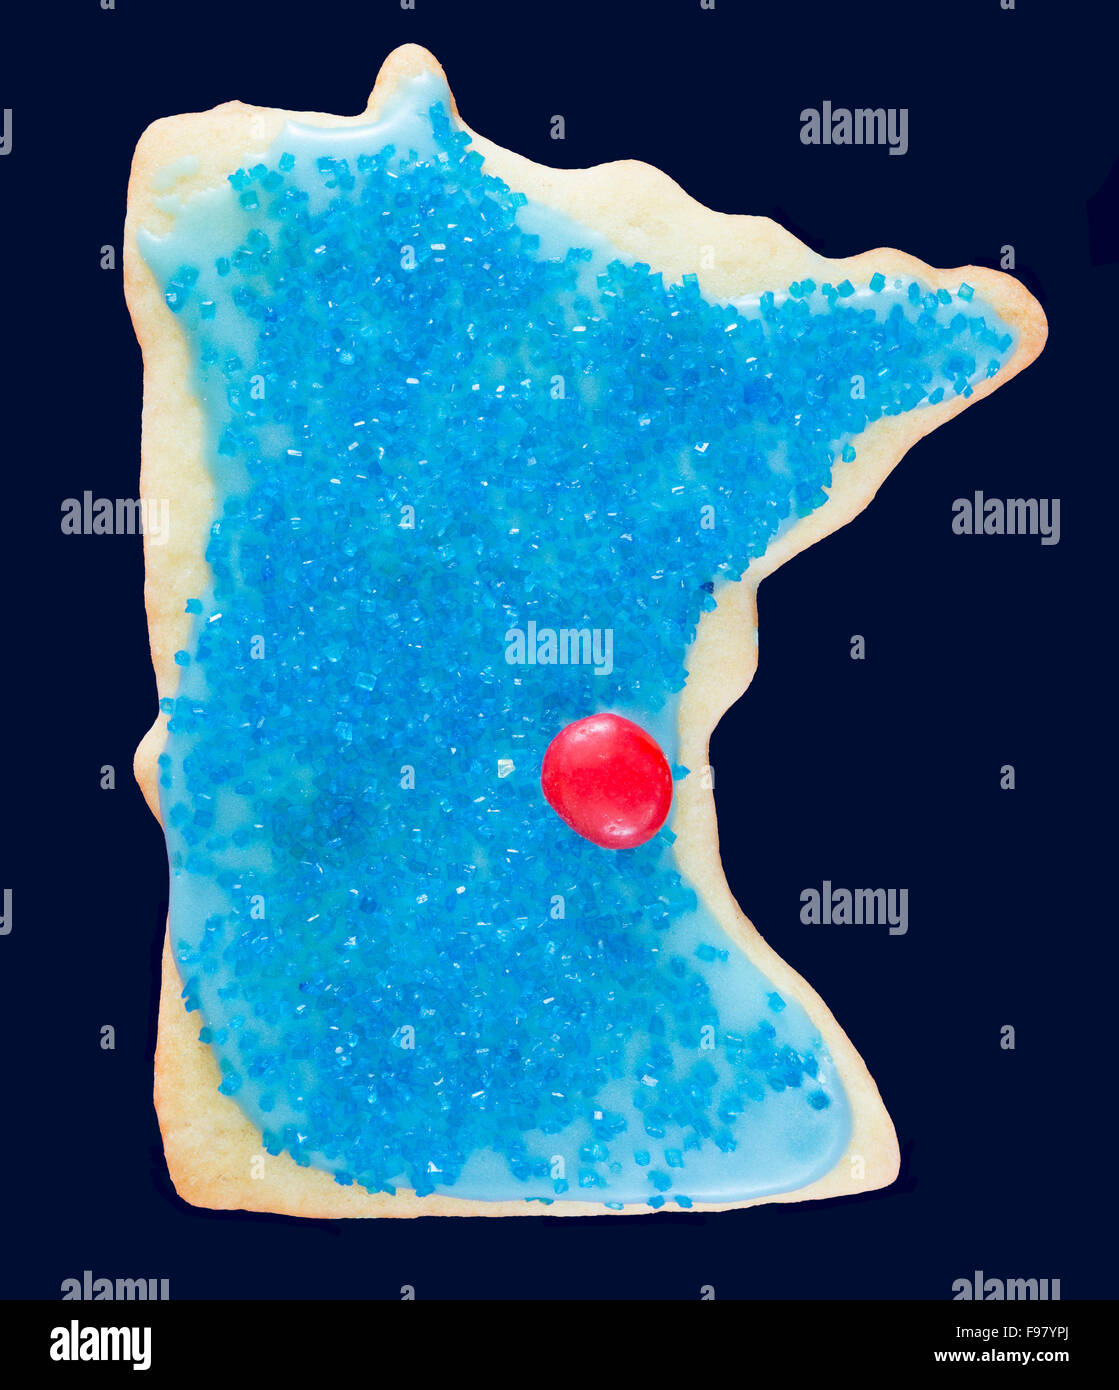 A holiday sugar cookie shaped like the US state of Minnesota with the red candy dot representing the Twin Cities - Stock Image